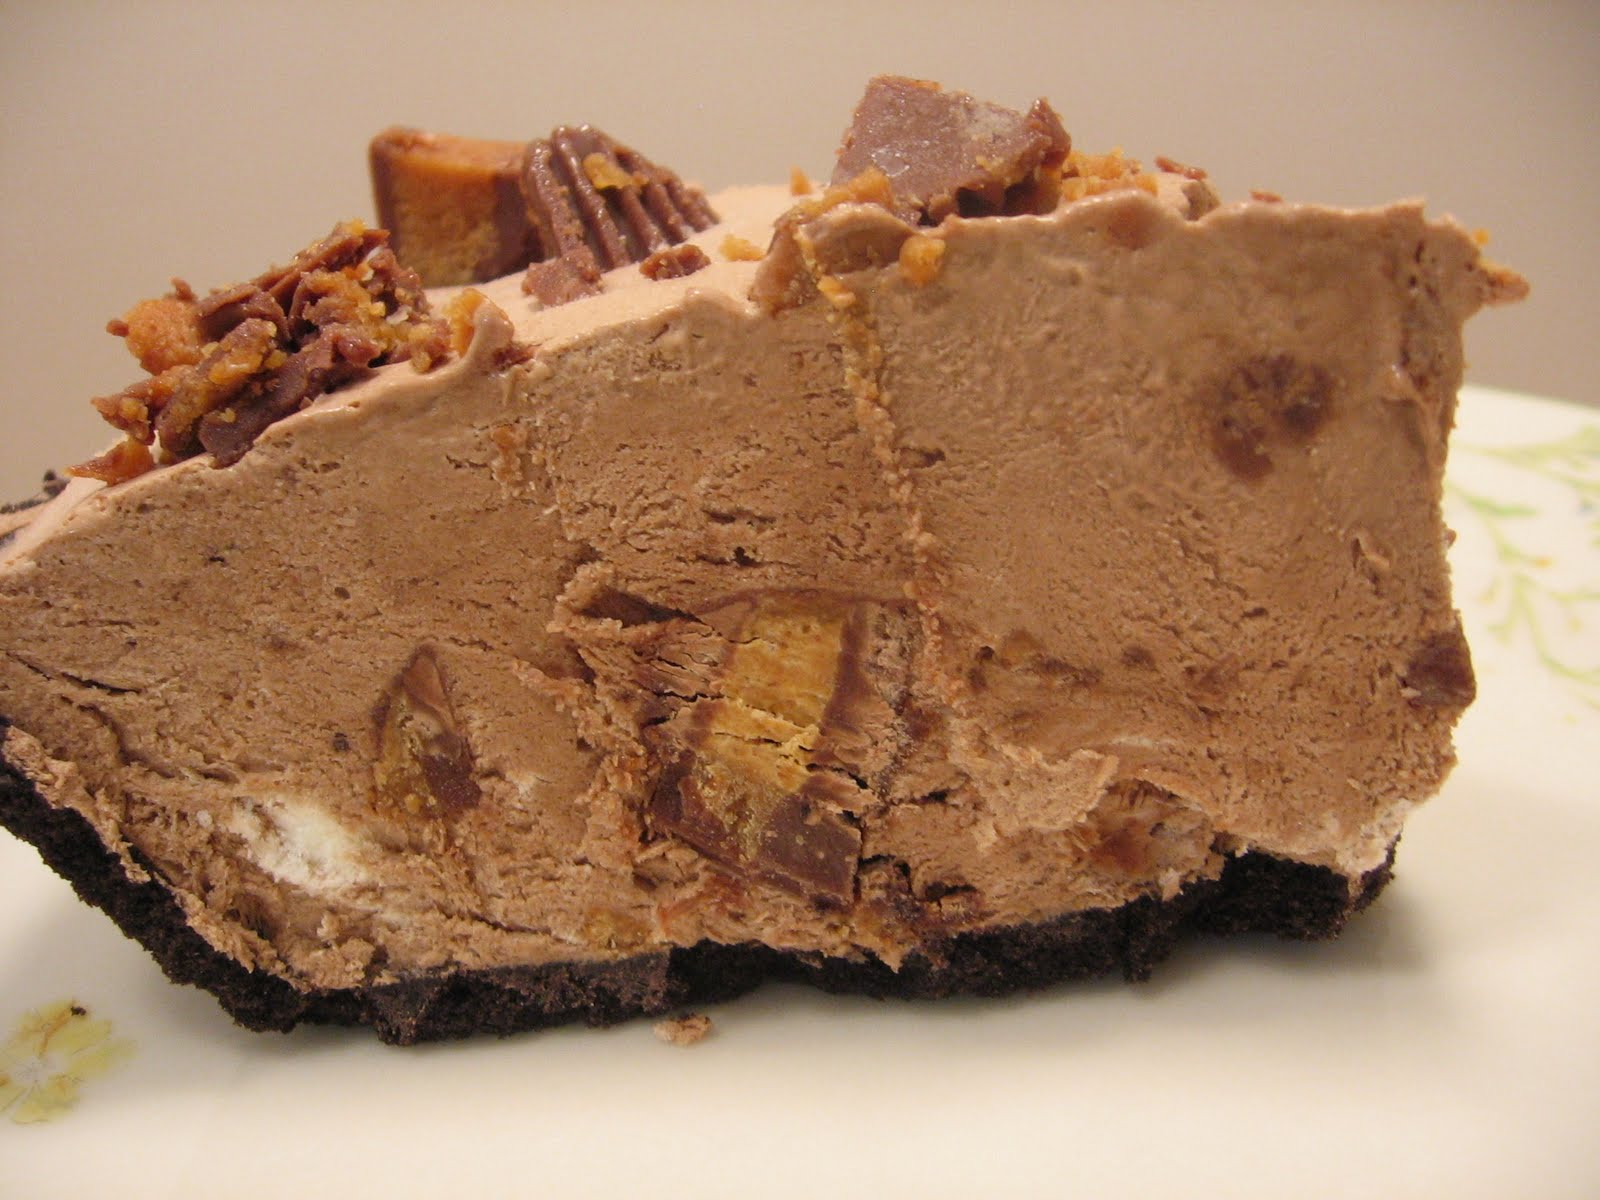 Jenn's Food Journey: Peanut Butter Cup Pie